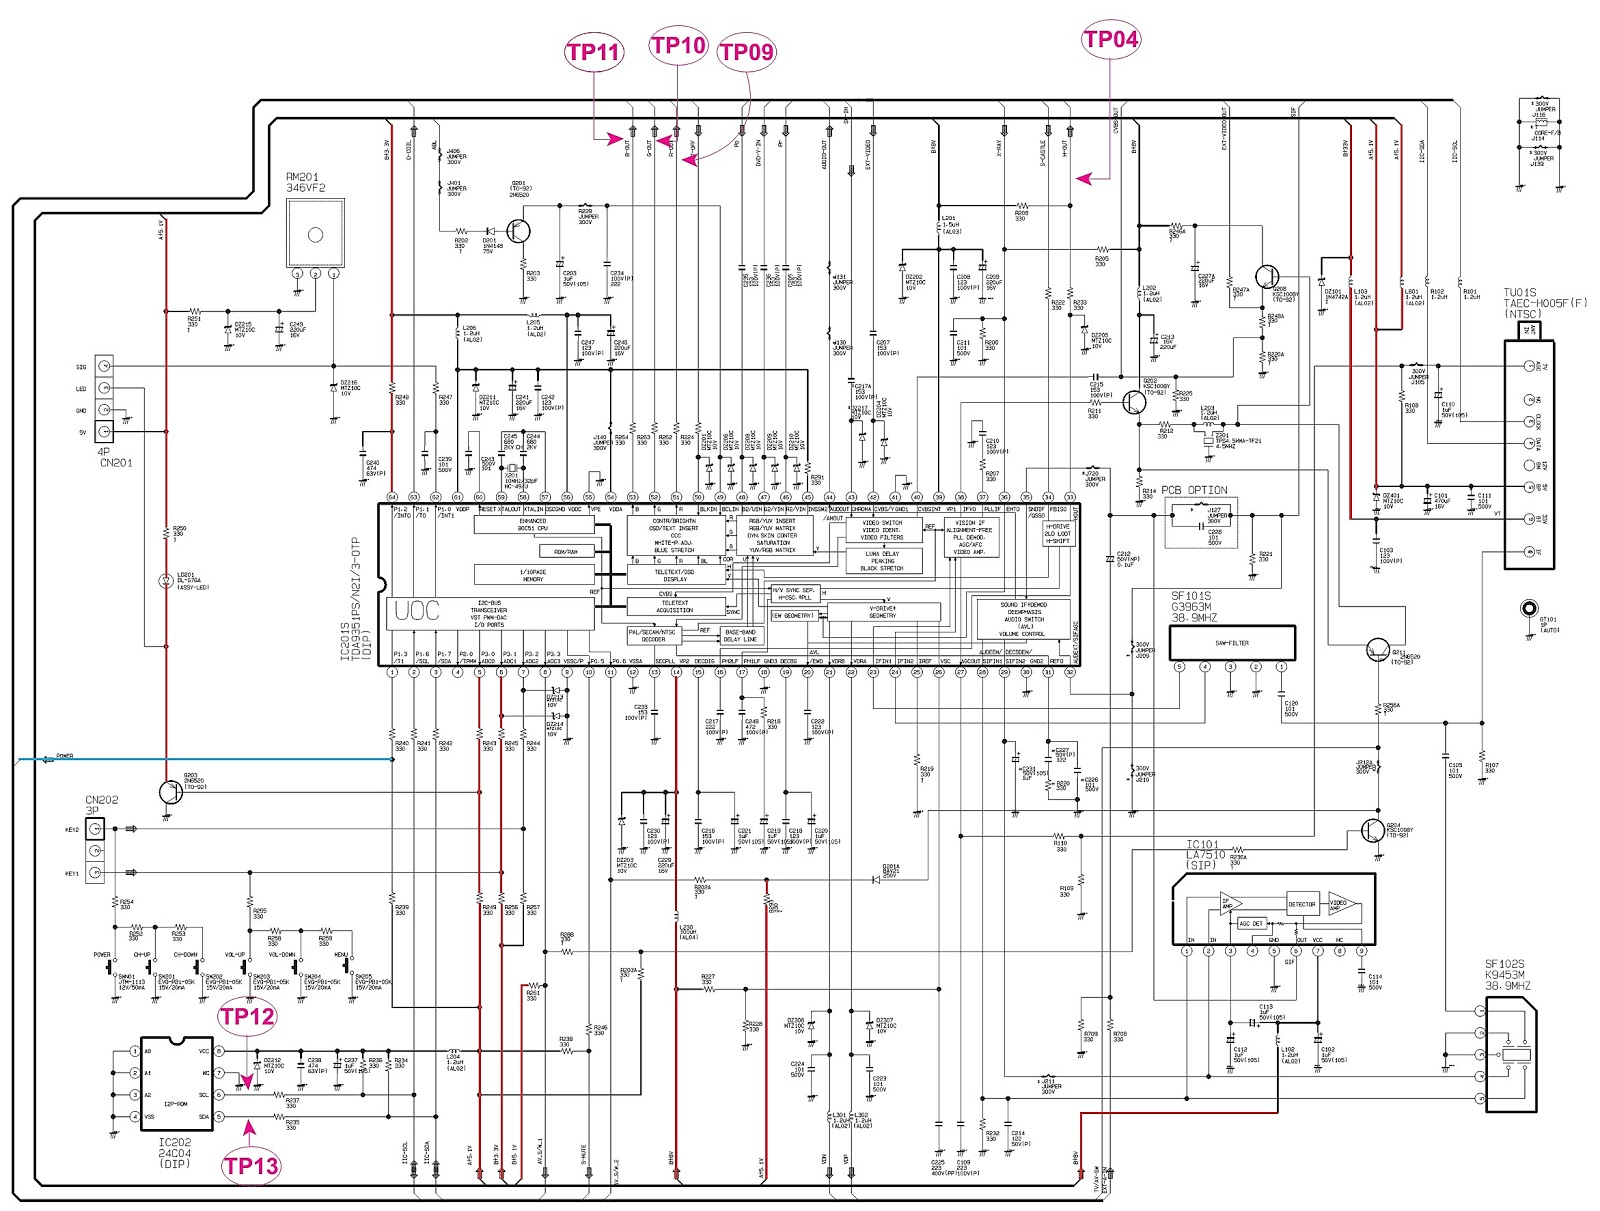 micom samsung cl21k40 crt tv service mode circuit diagram samsung wiring diagram at soozxer.org